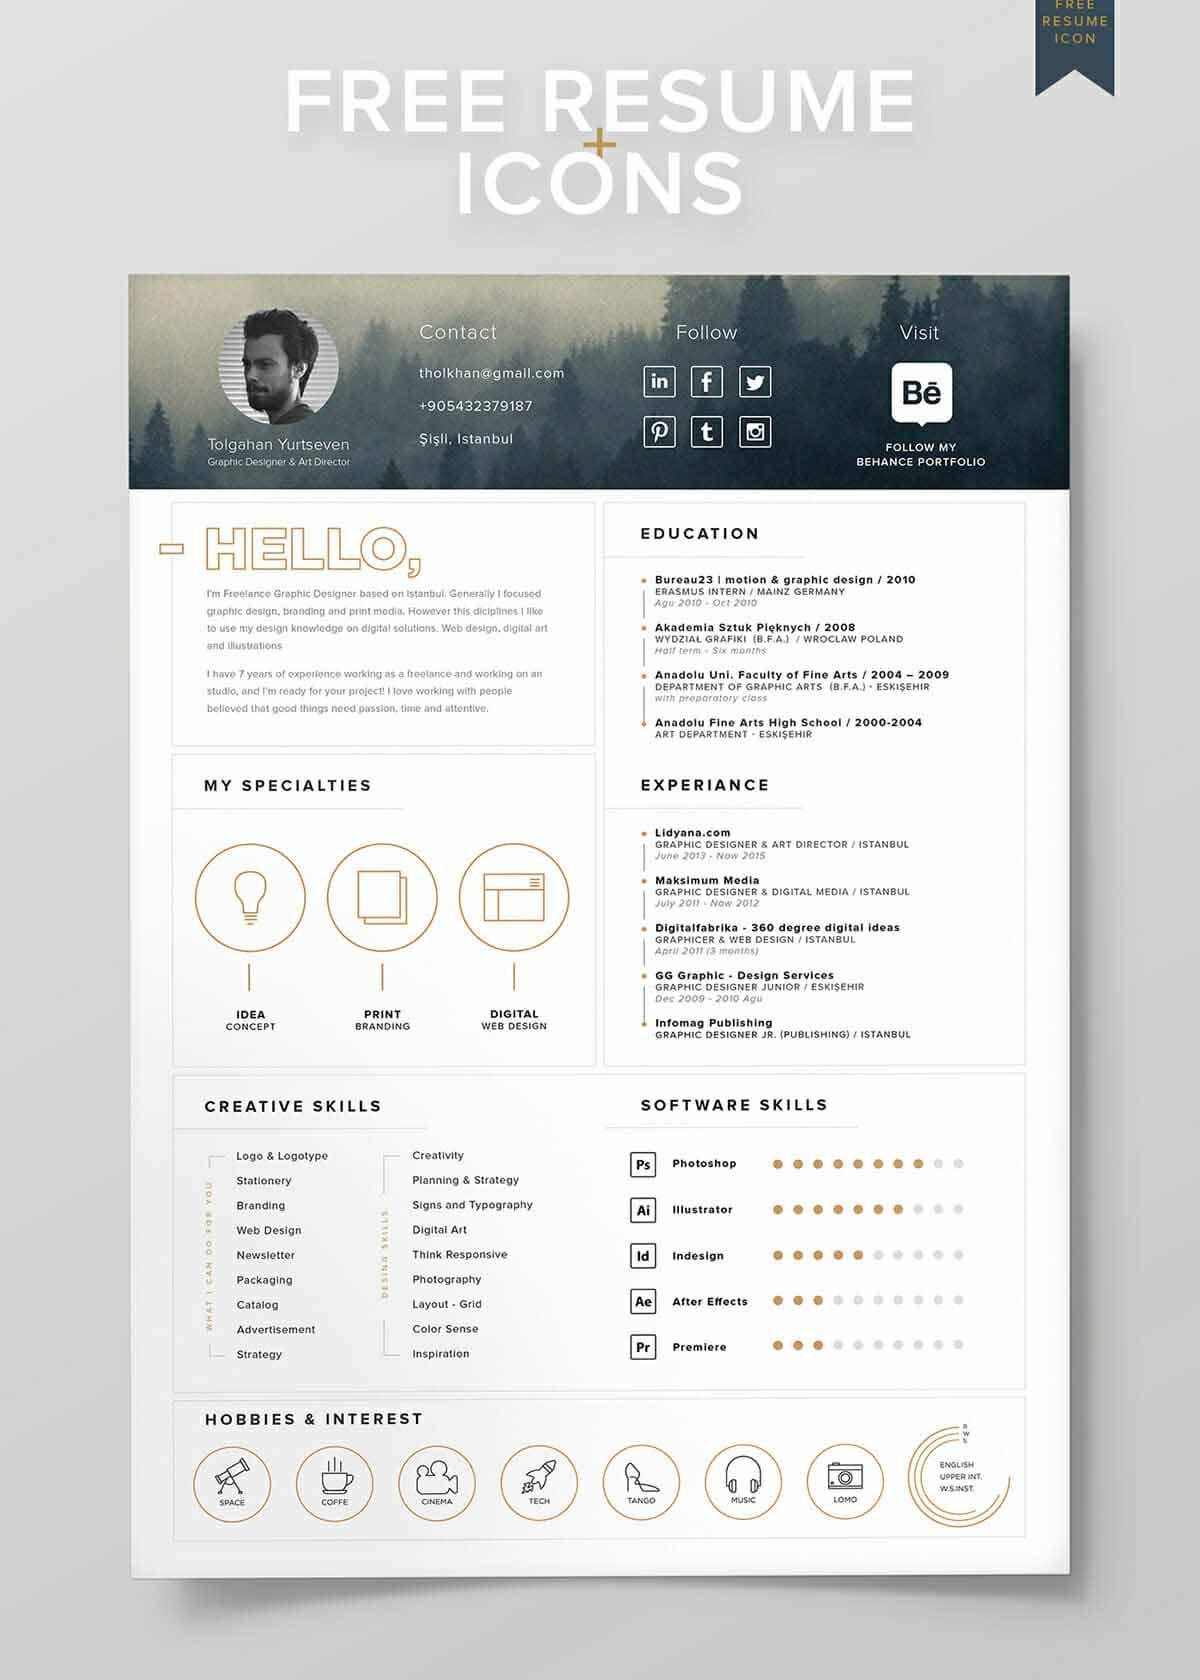 Good Resume Design With Golden Icons And Photo In Header  Good Resume Design